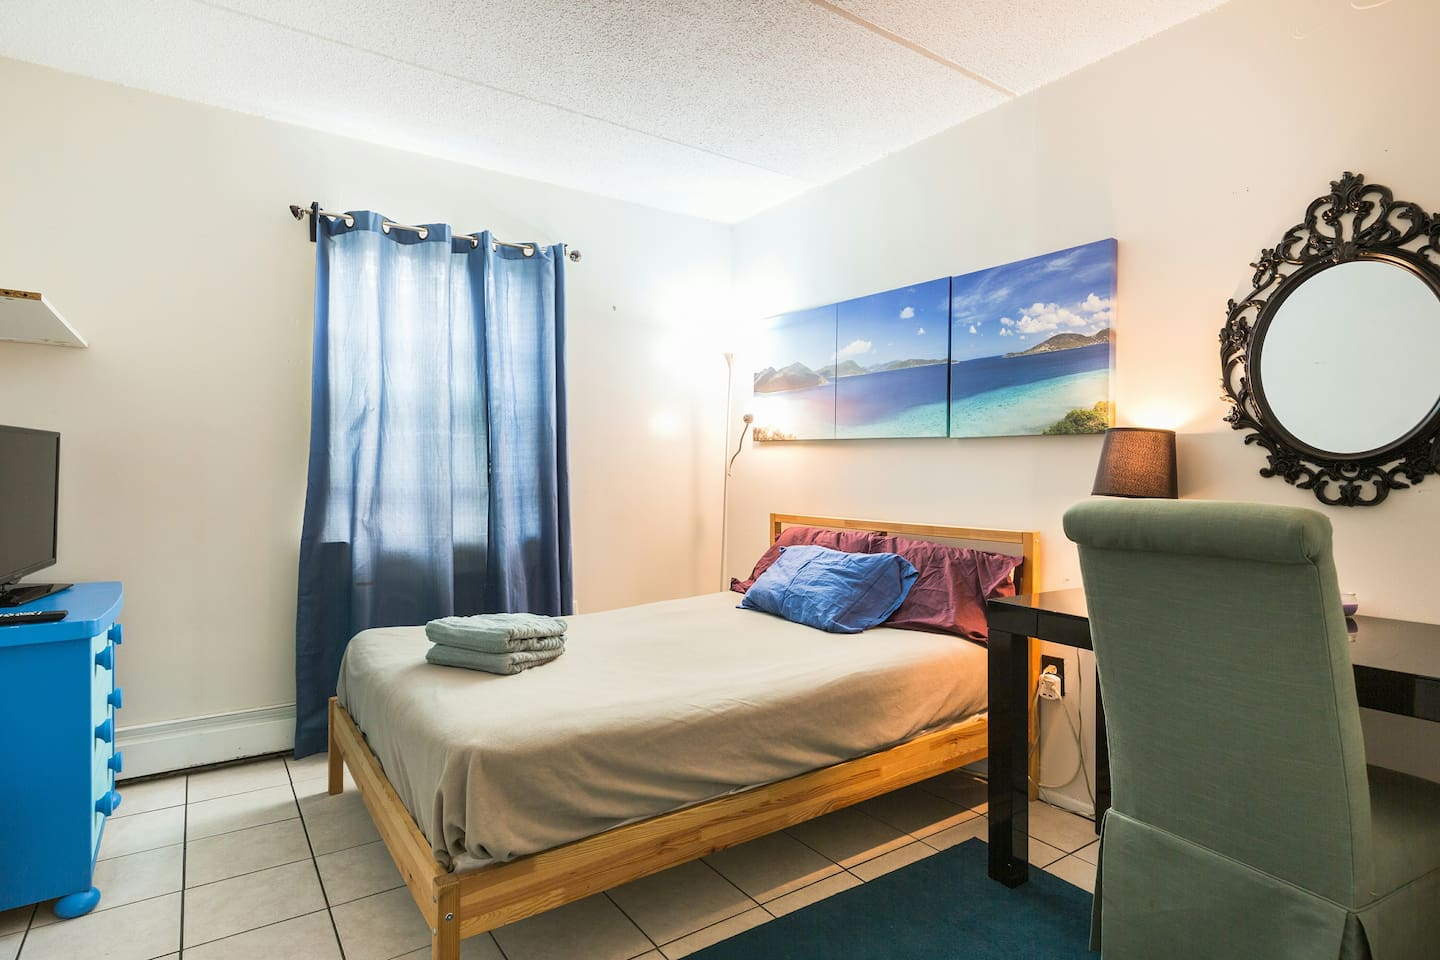 Full size bed, desk, tv, and window. Usb outlets available in the room for optimal phone charging.